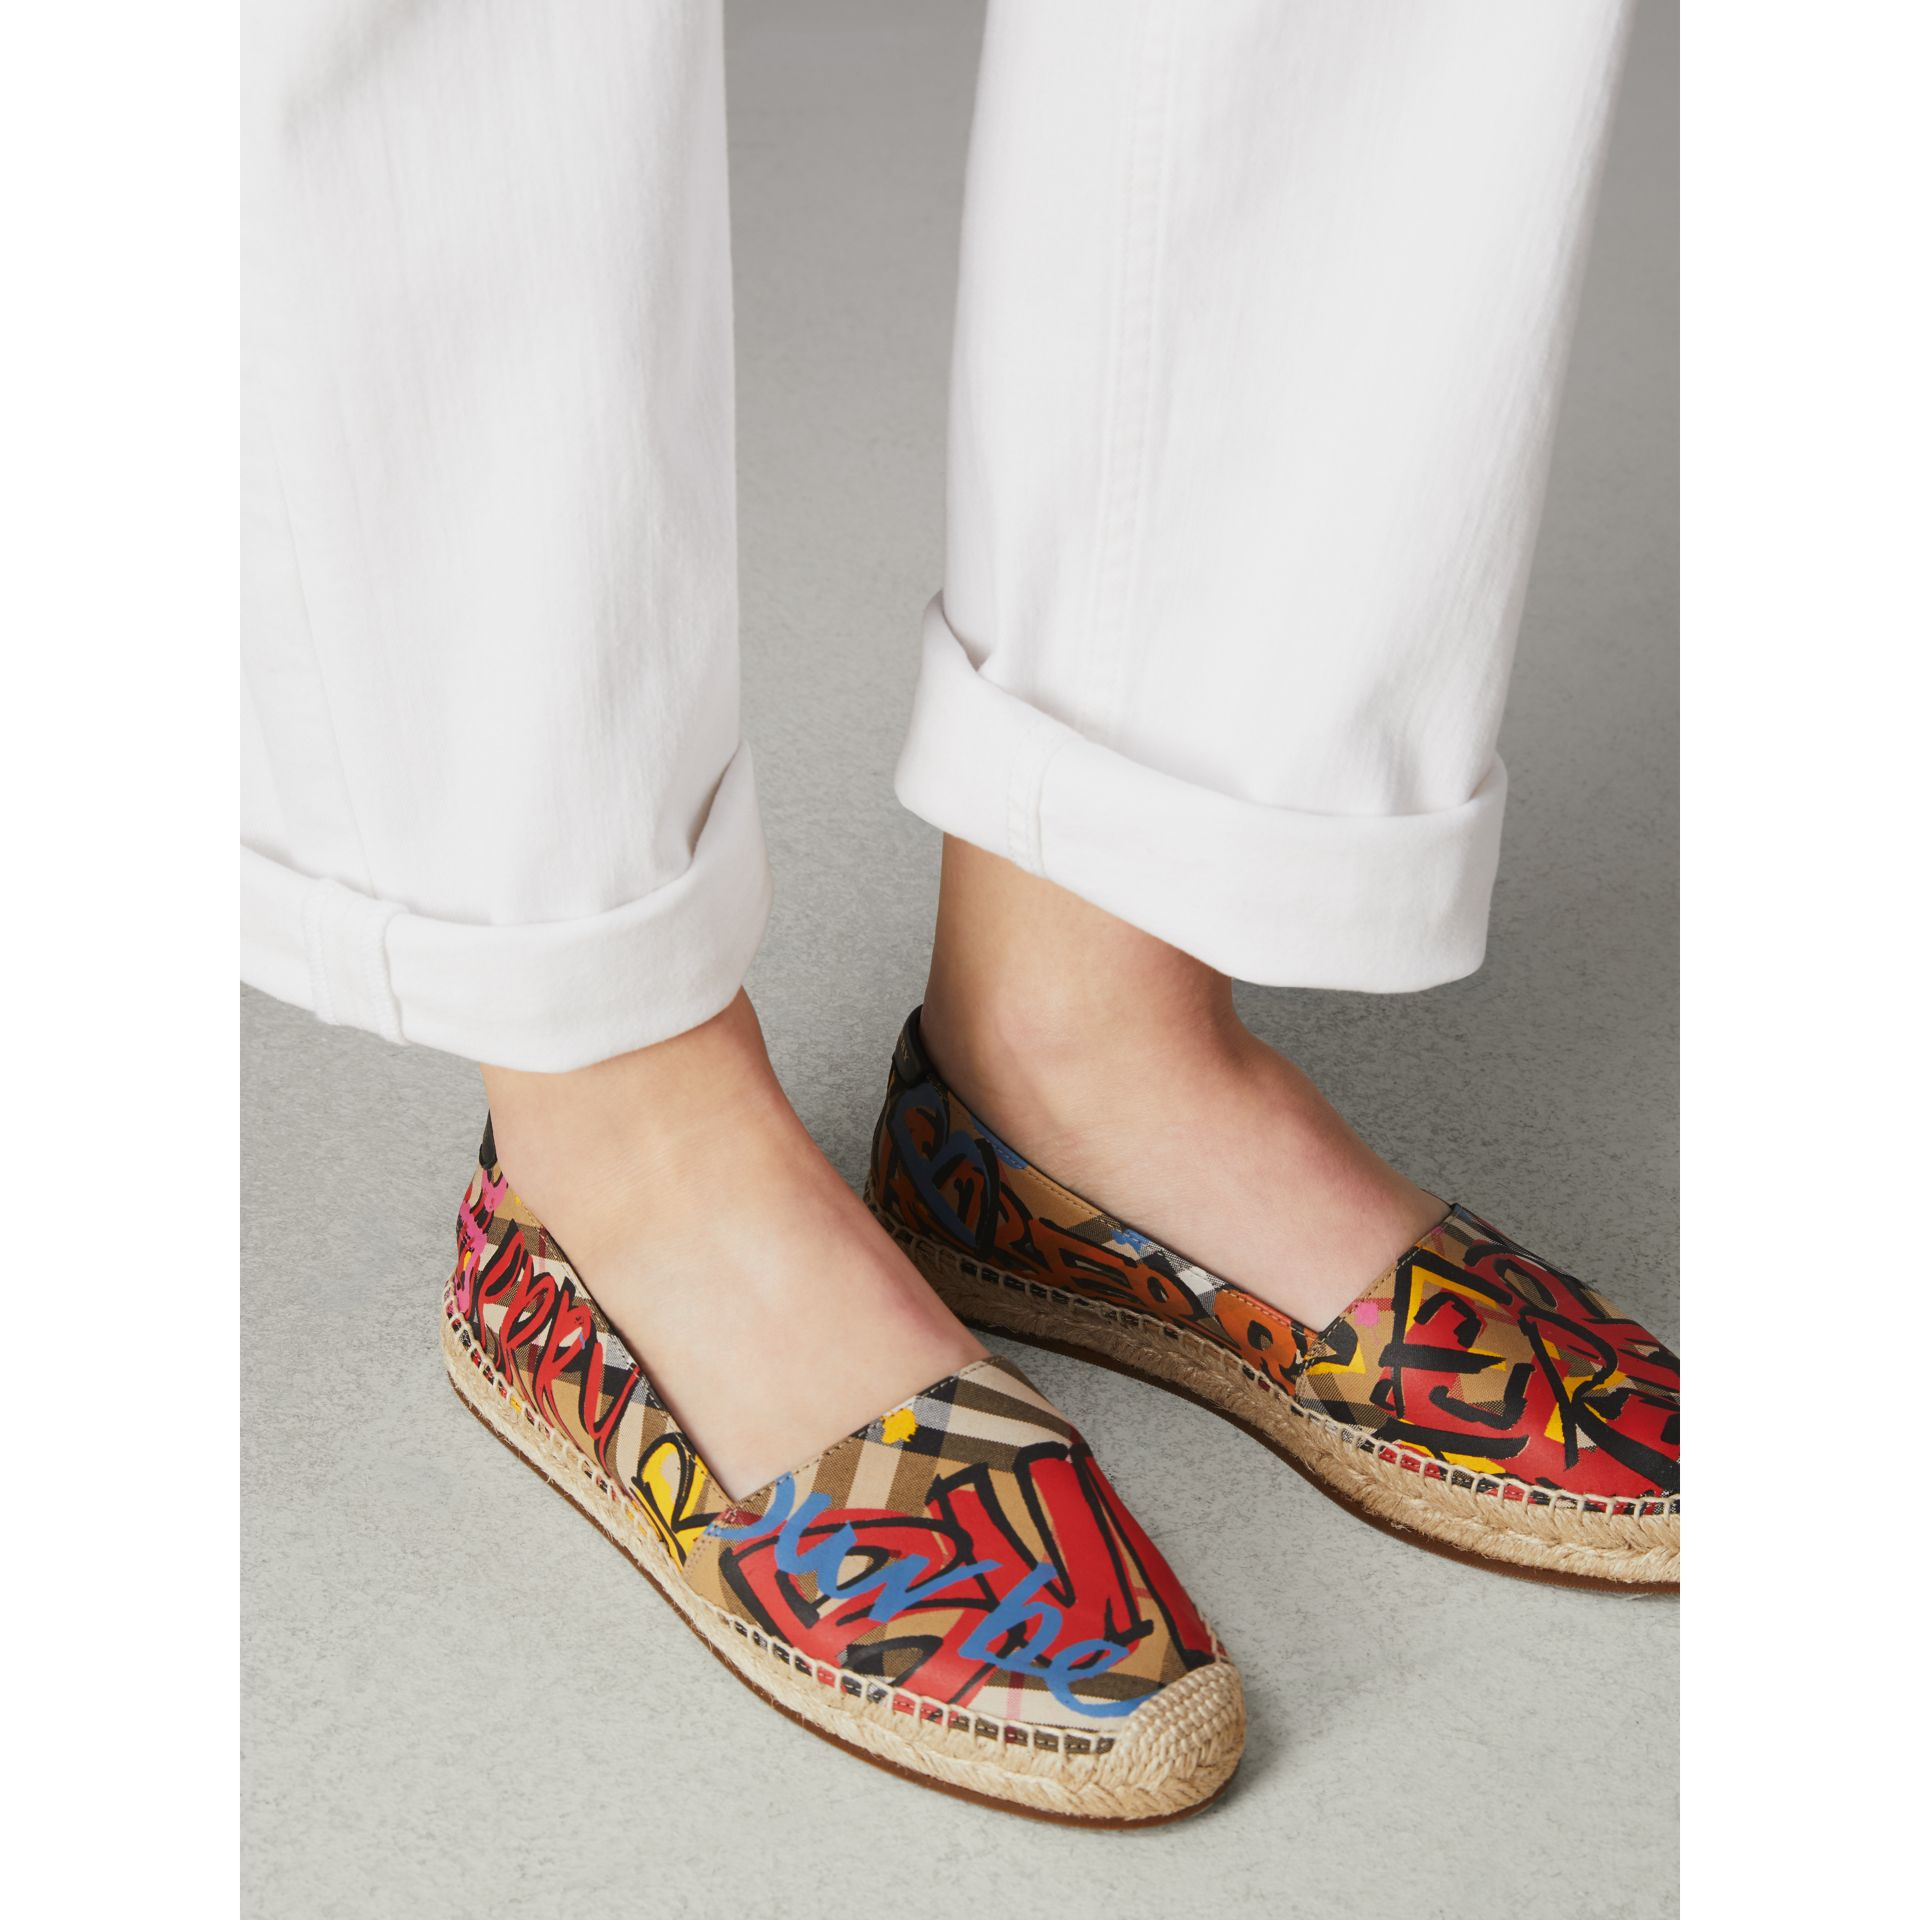 Graffiti Print Vintage Check Espadrilles in Antique Yellow - Women | Burberry Canada - gallery image 2